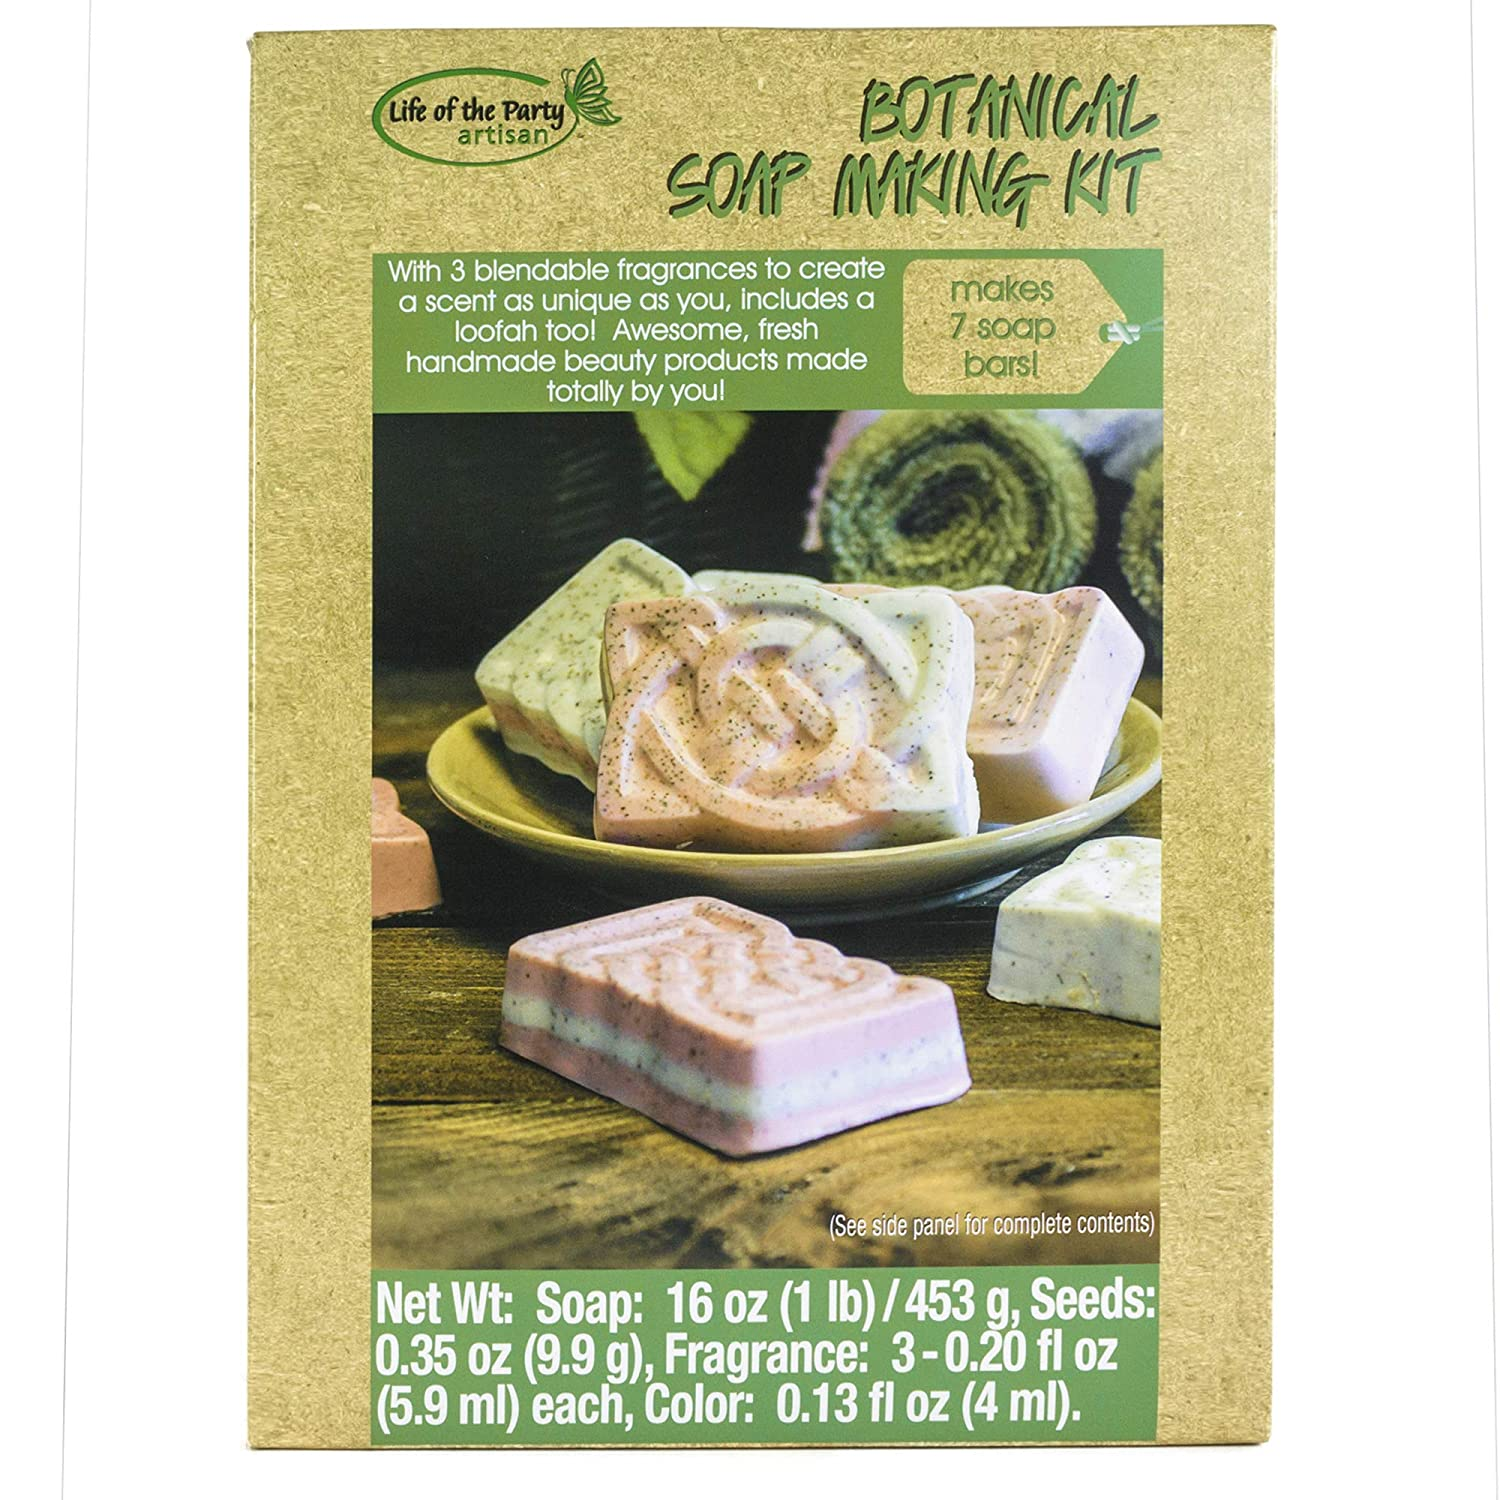 Life of the Party Botanical Soap Making Kit, 57035